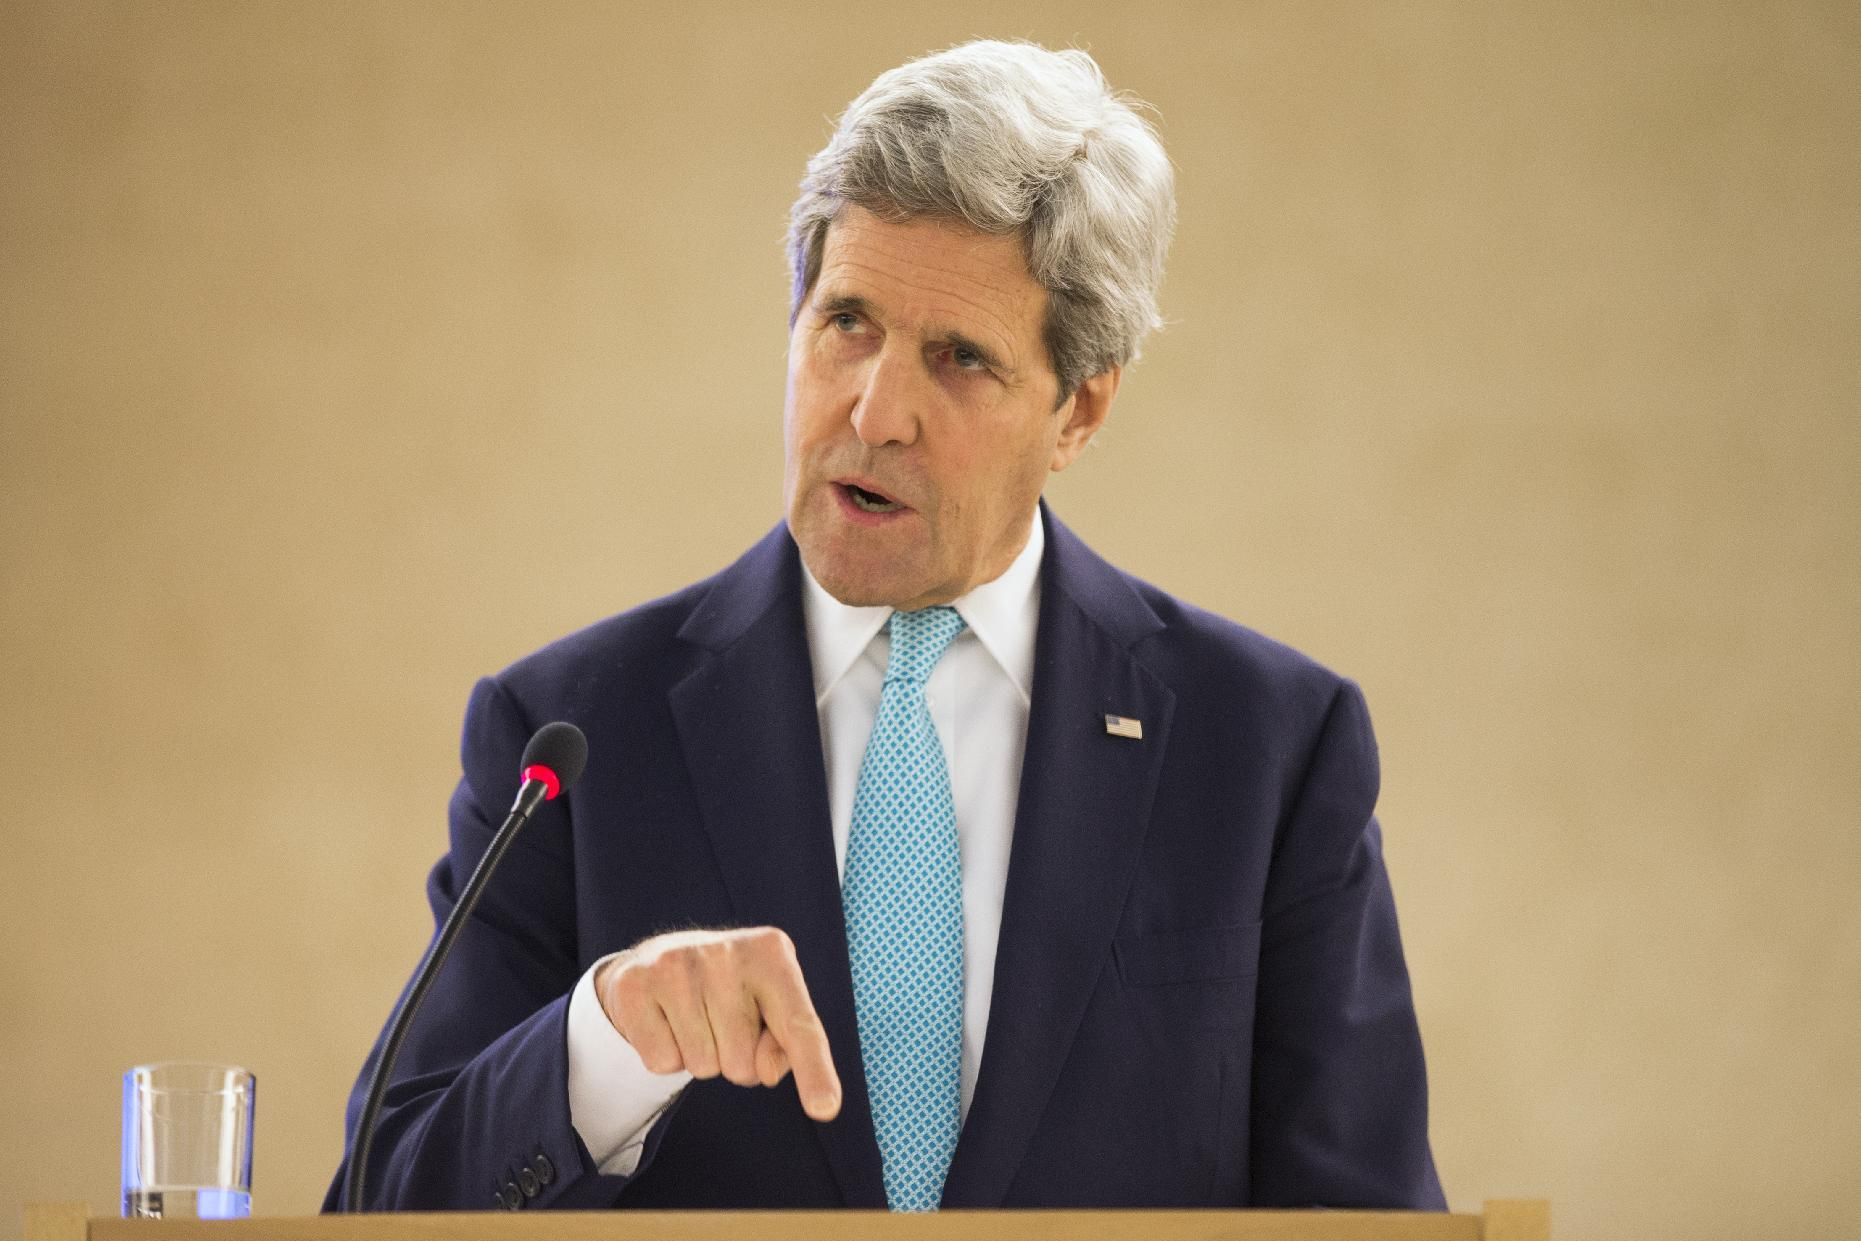 Kerry defends Israel before UN rights panel